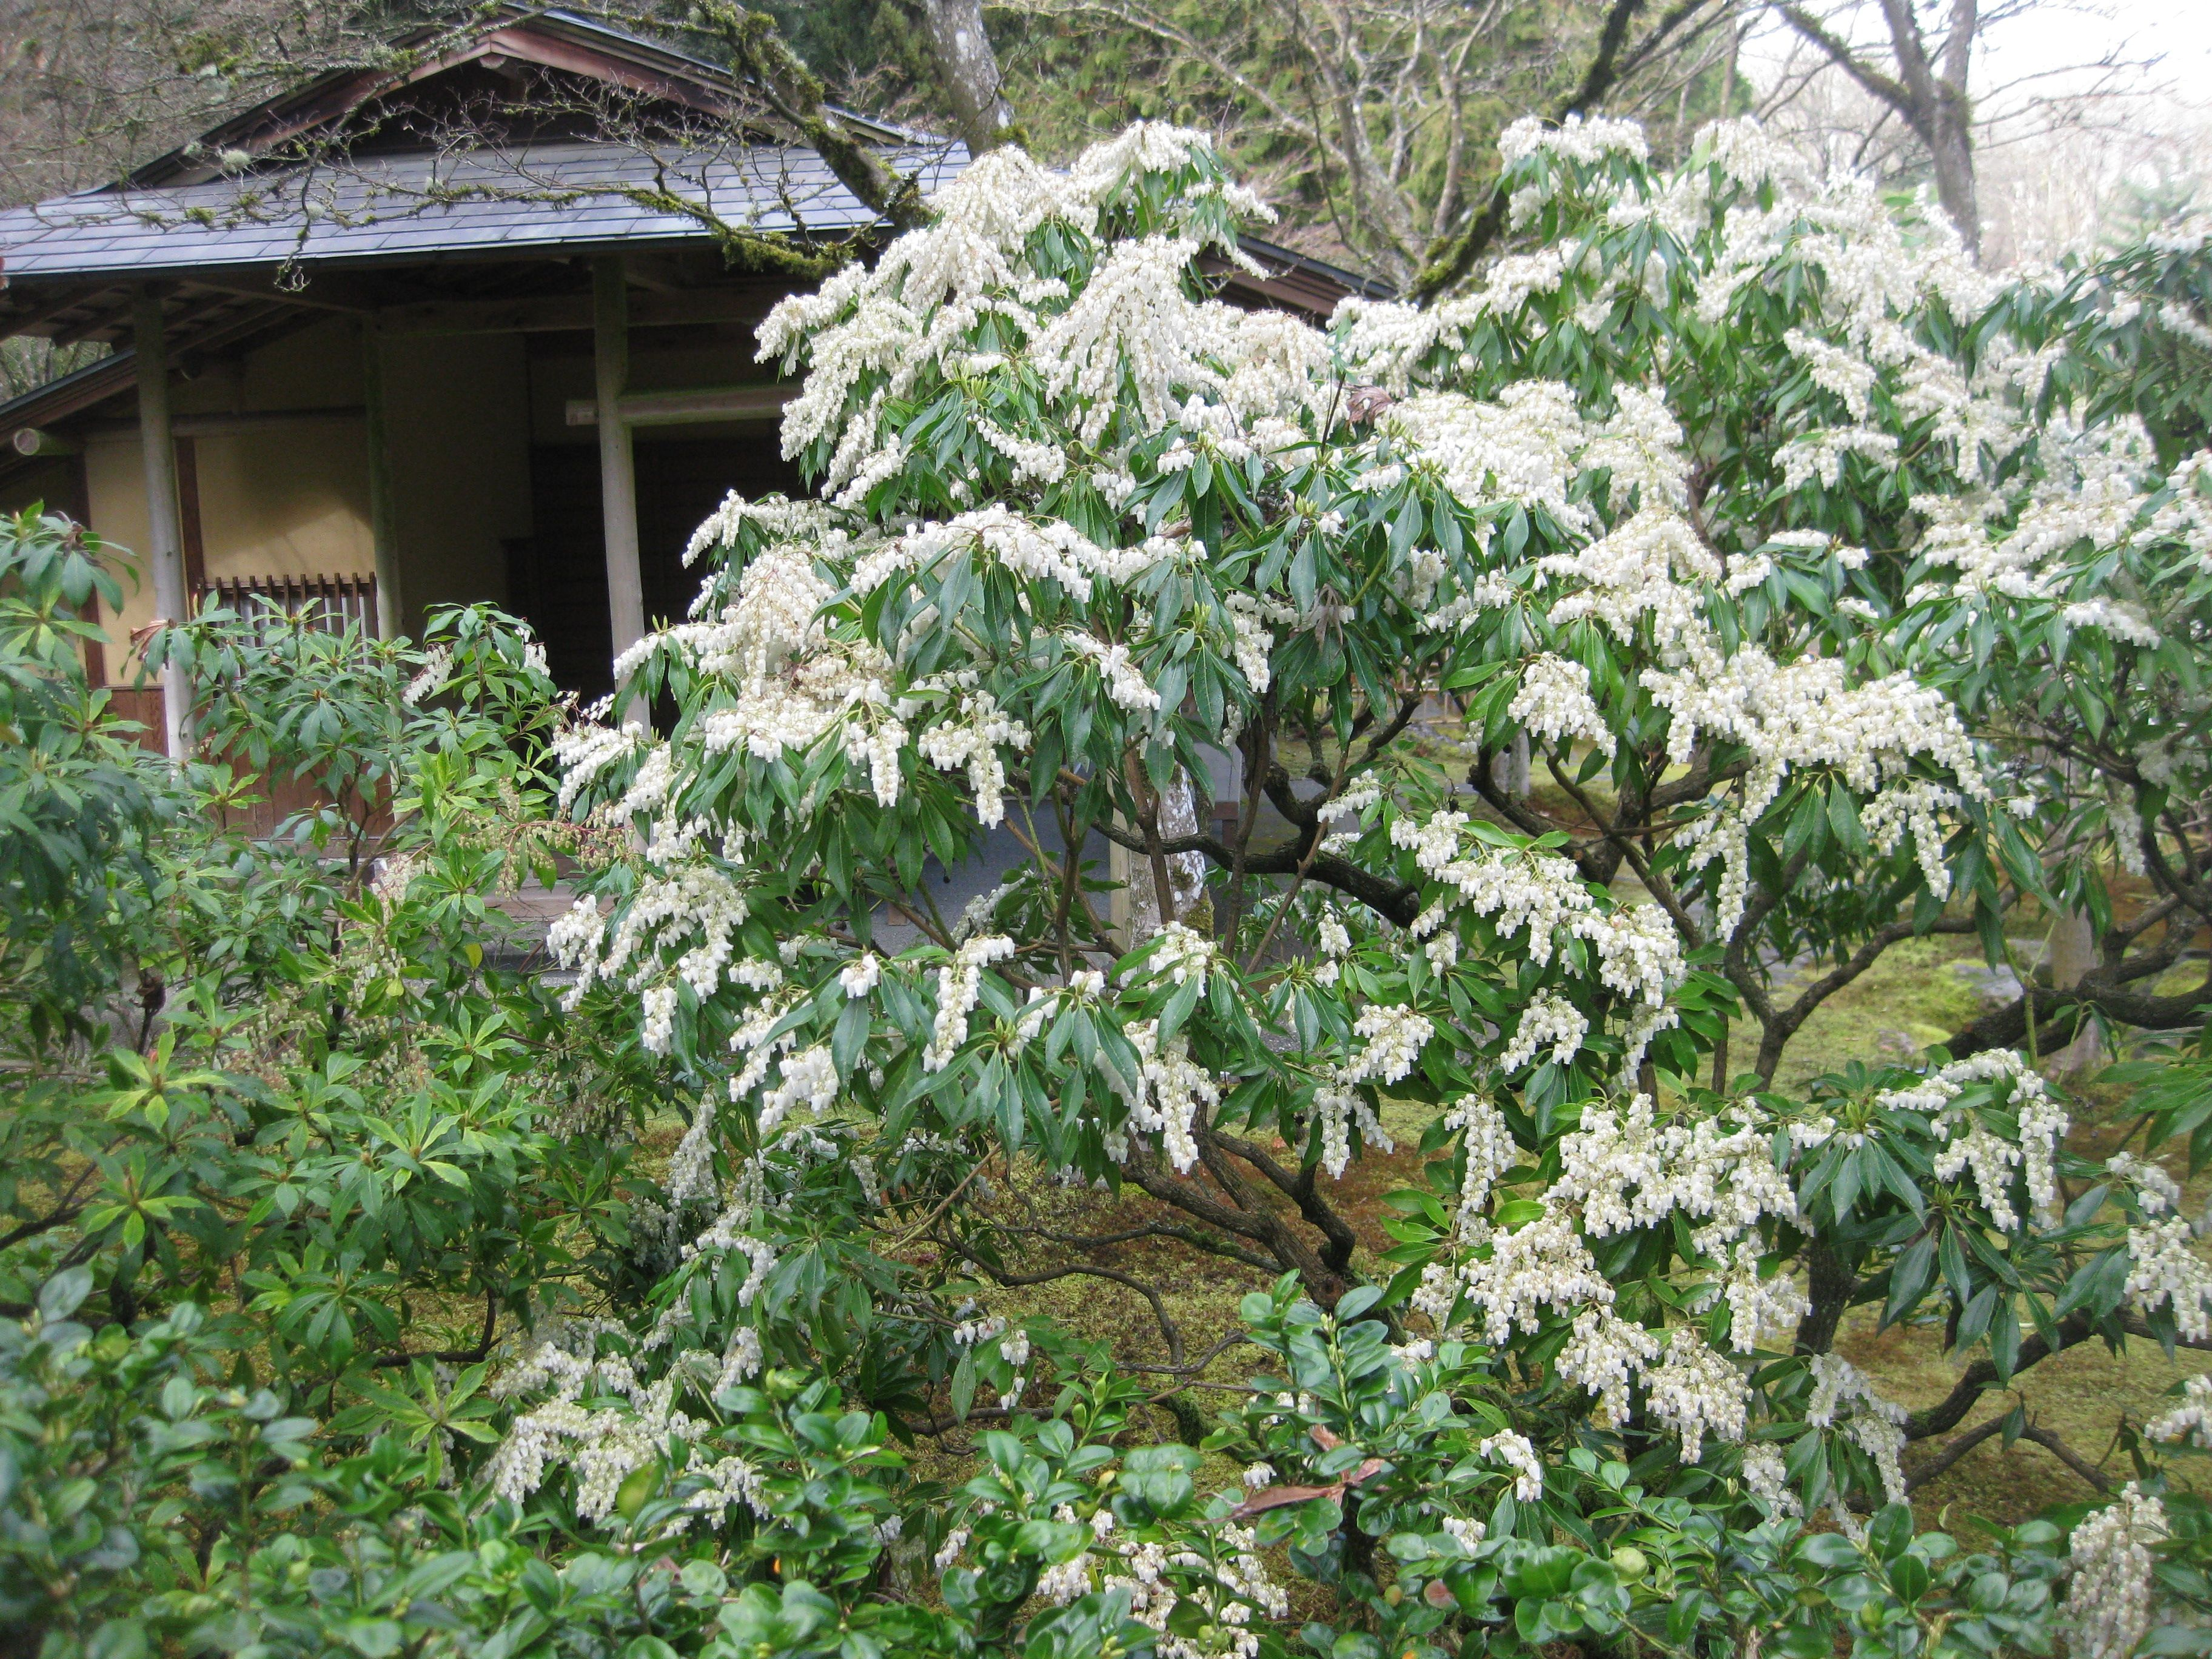 Pieris Japonica Lily Of The Valley Shrub An Attractive Small Shrub